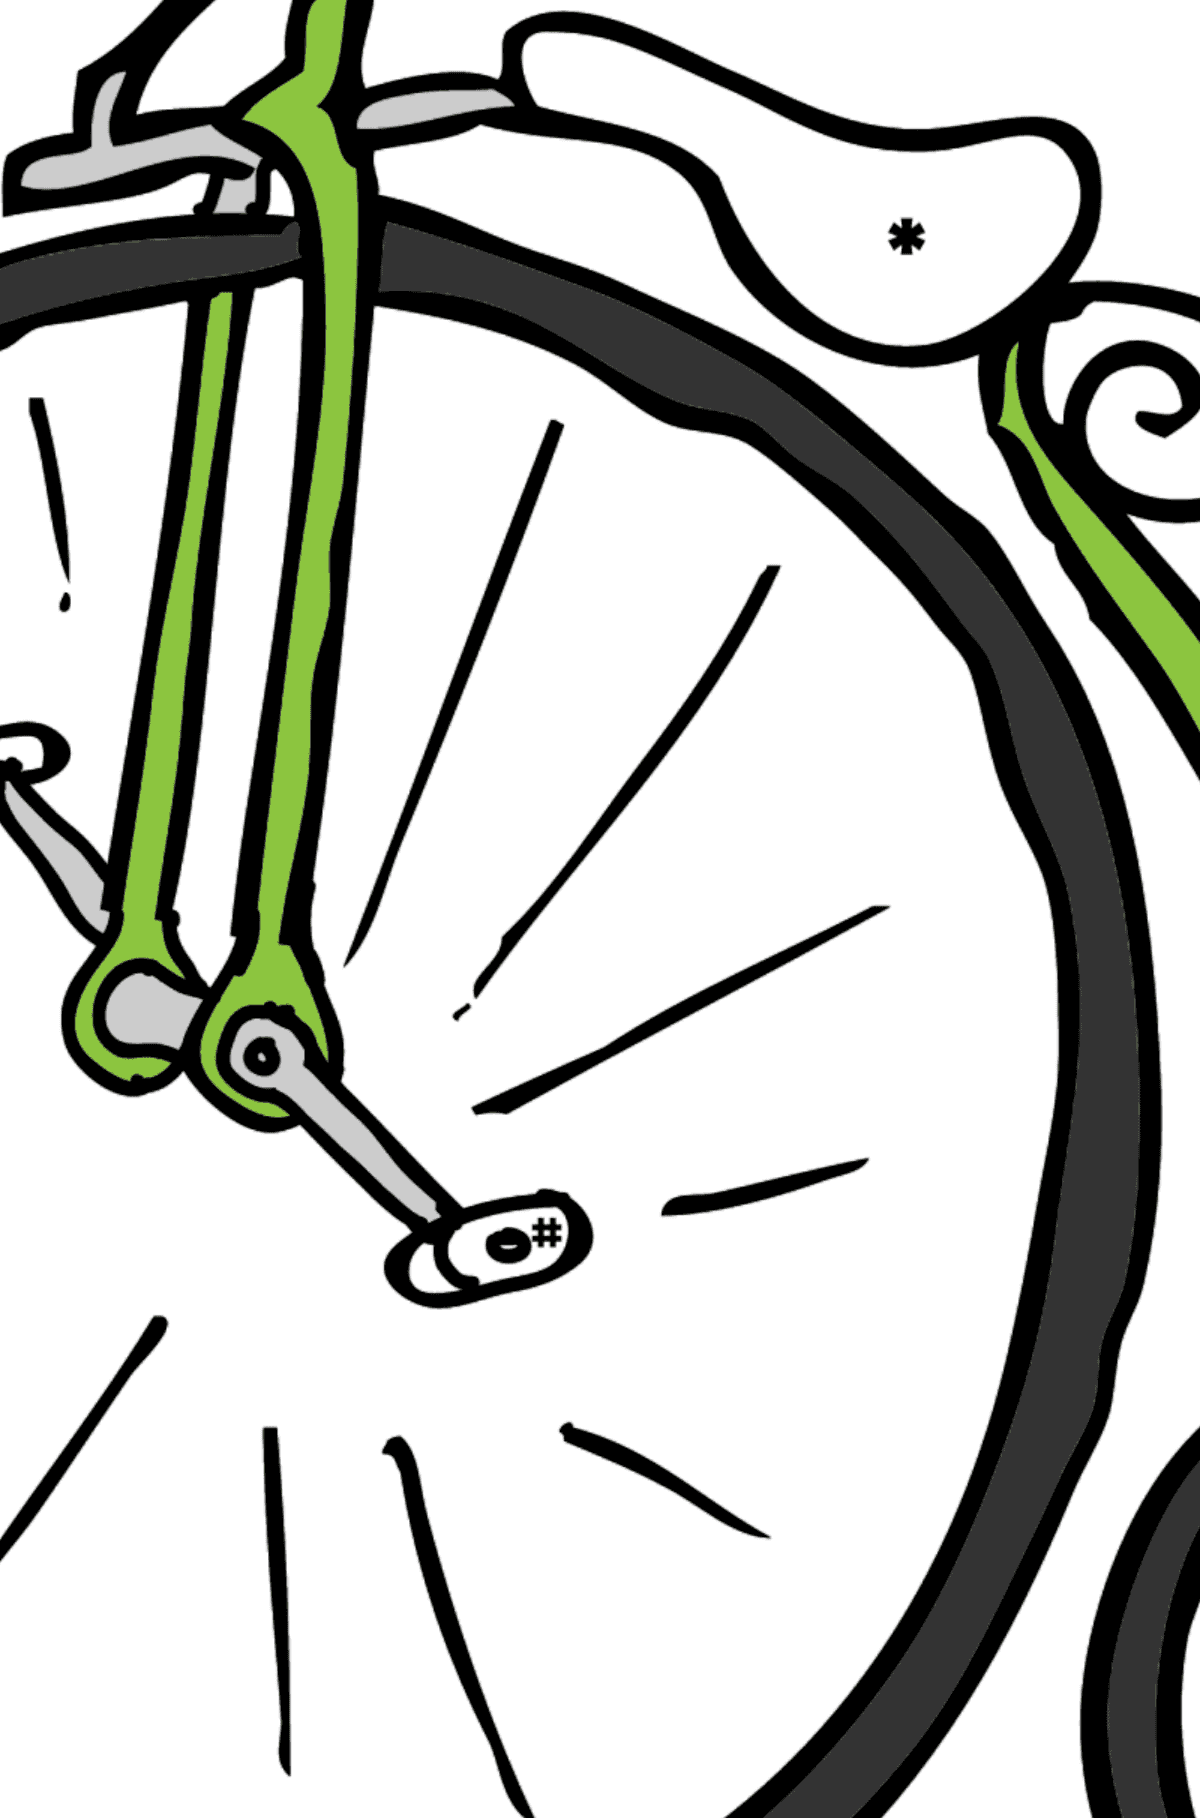 Coloring Page - A High-Wheel Cycle – Unicycle - Coloring by Symbols and Geometric Shapes for Kids